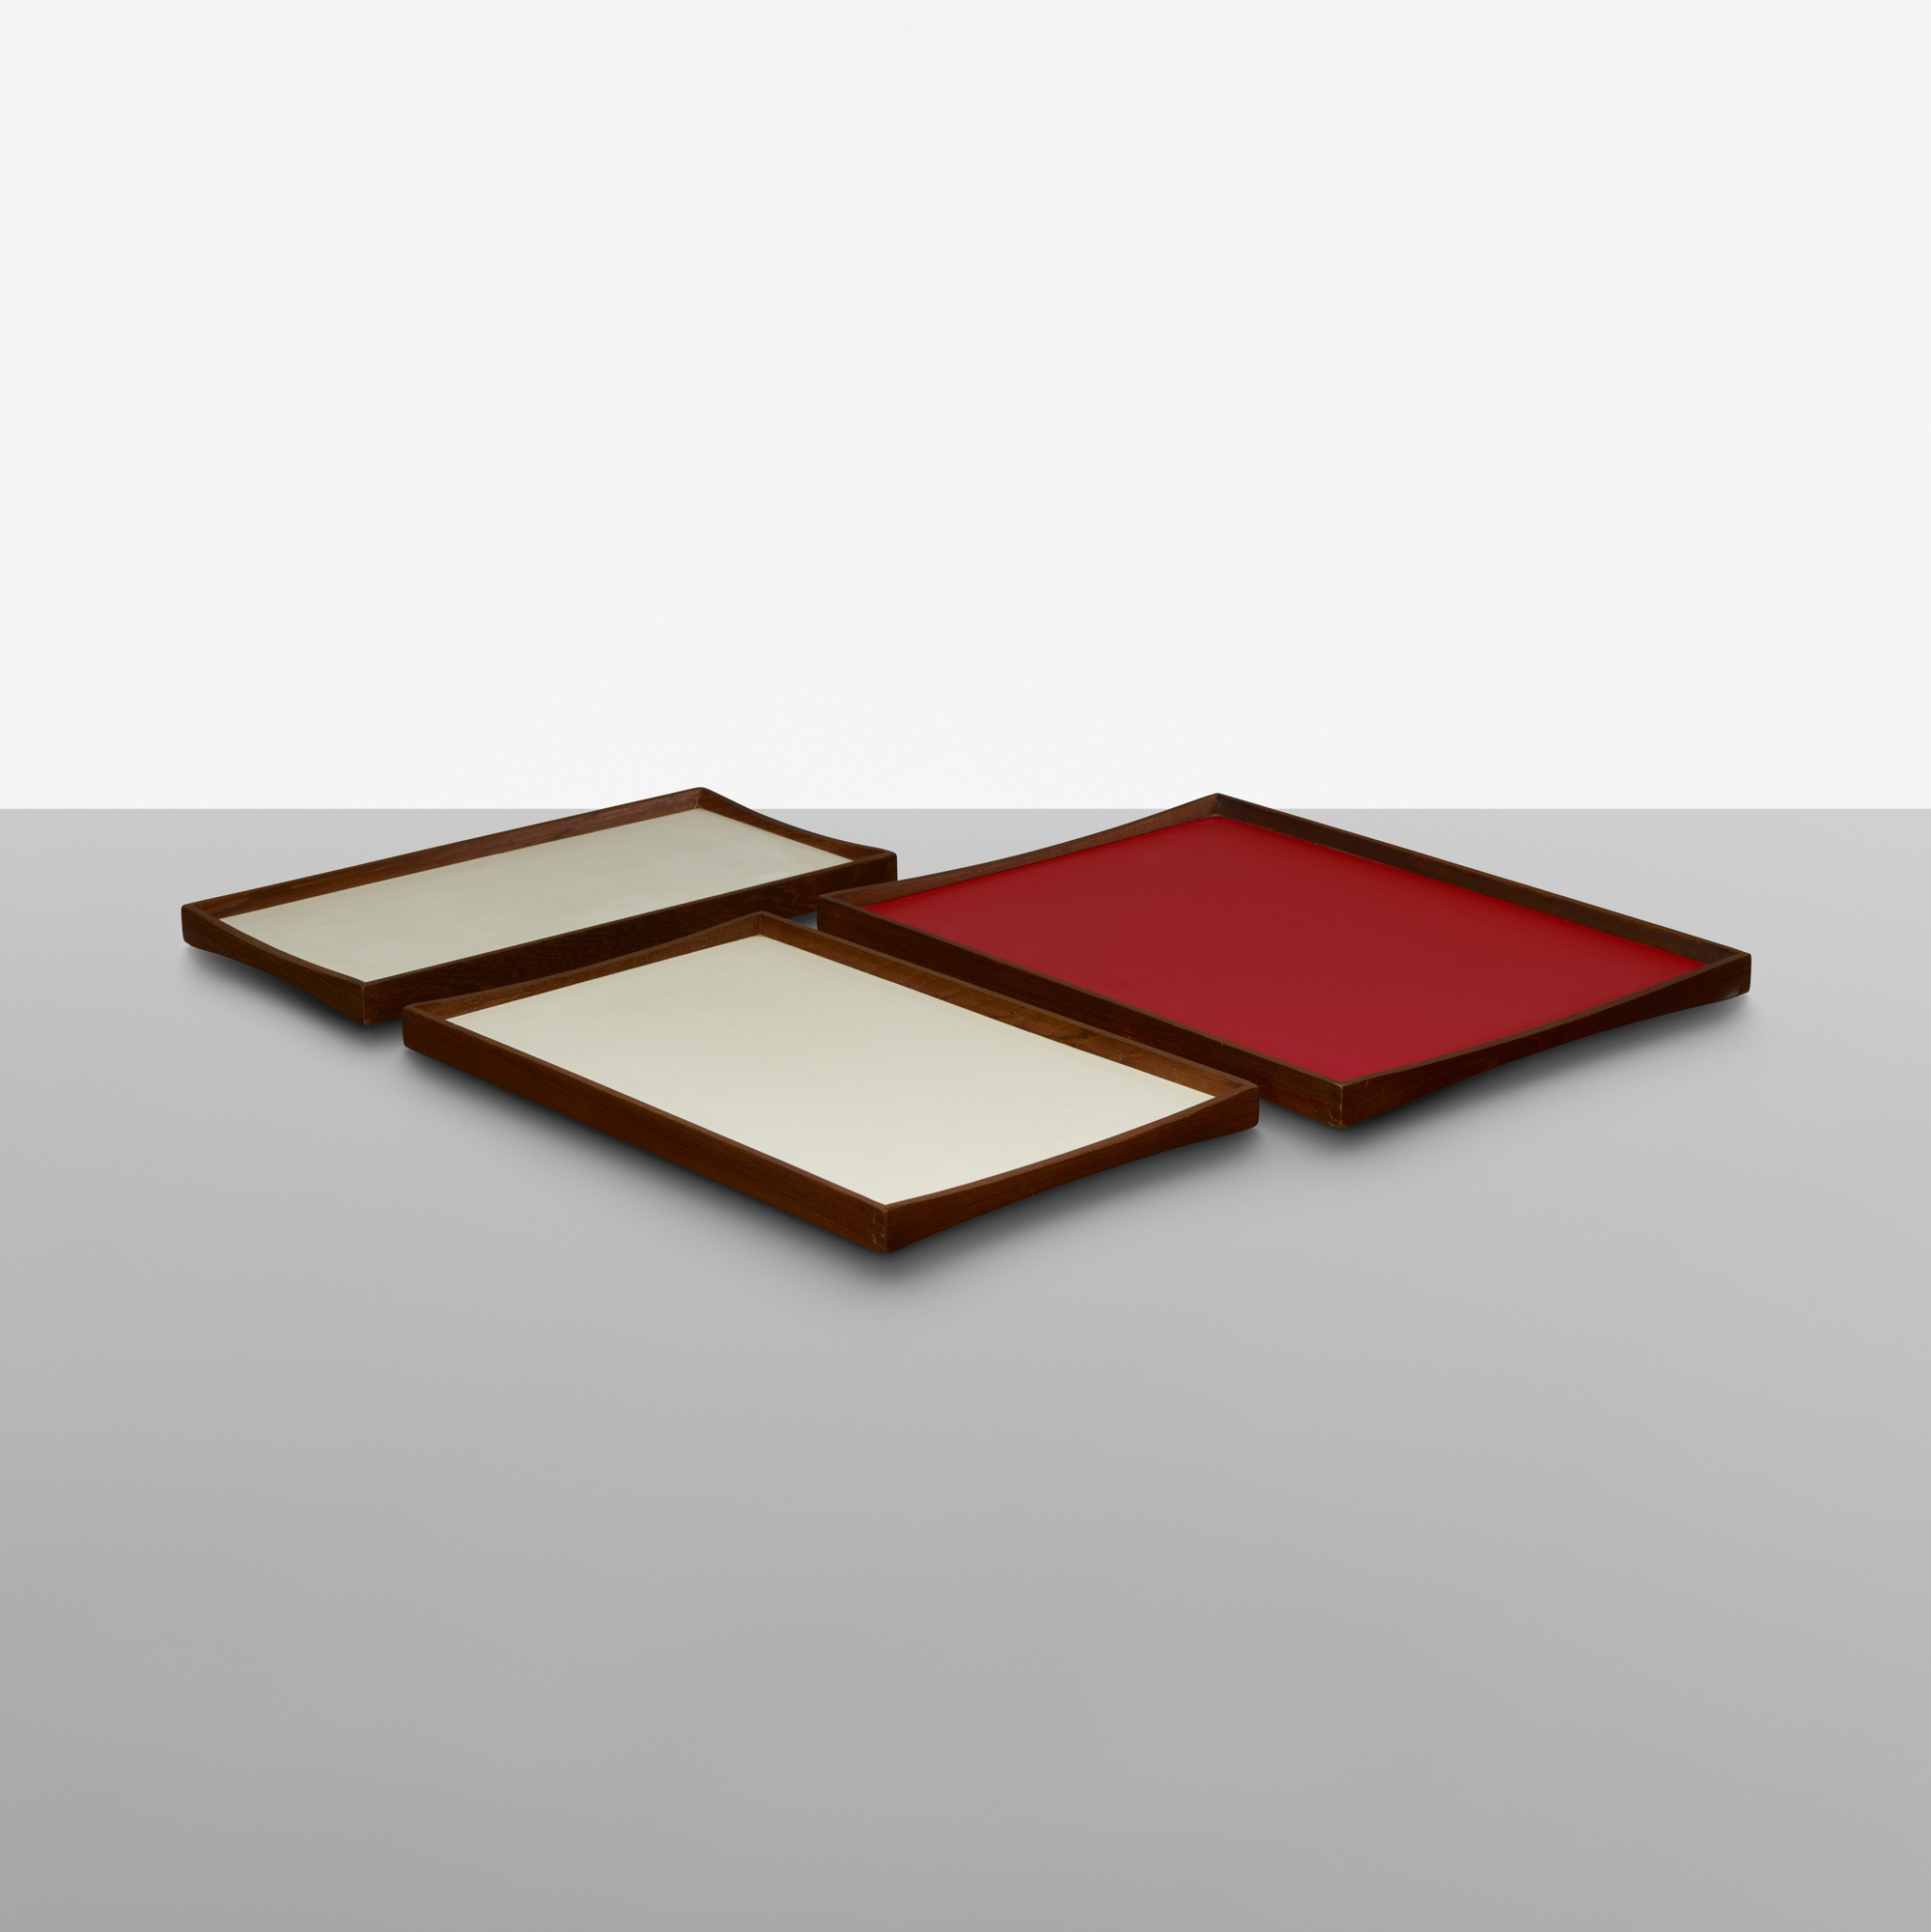 343: Finn Juhl / reversible trays, set of three (1 of 2)